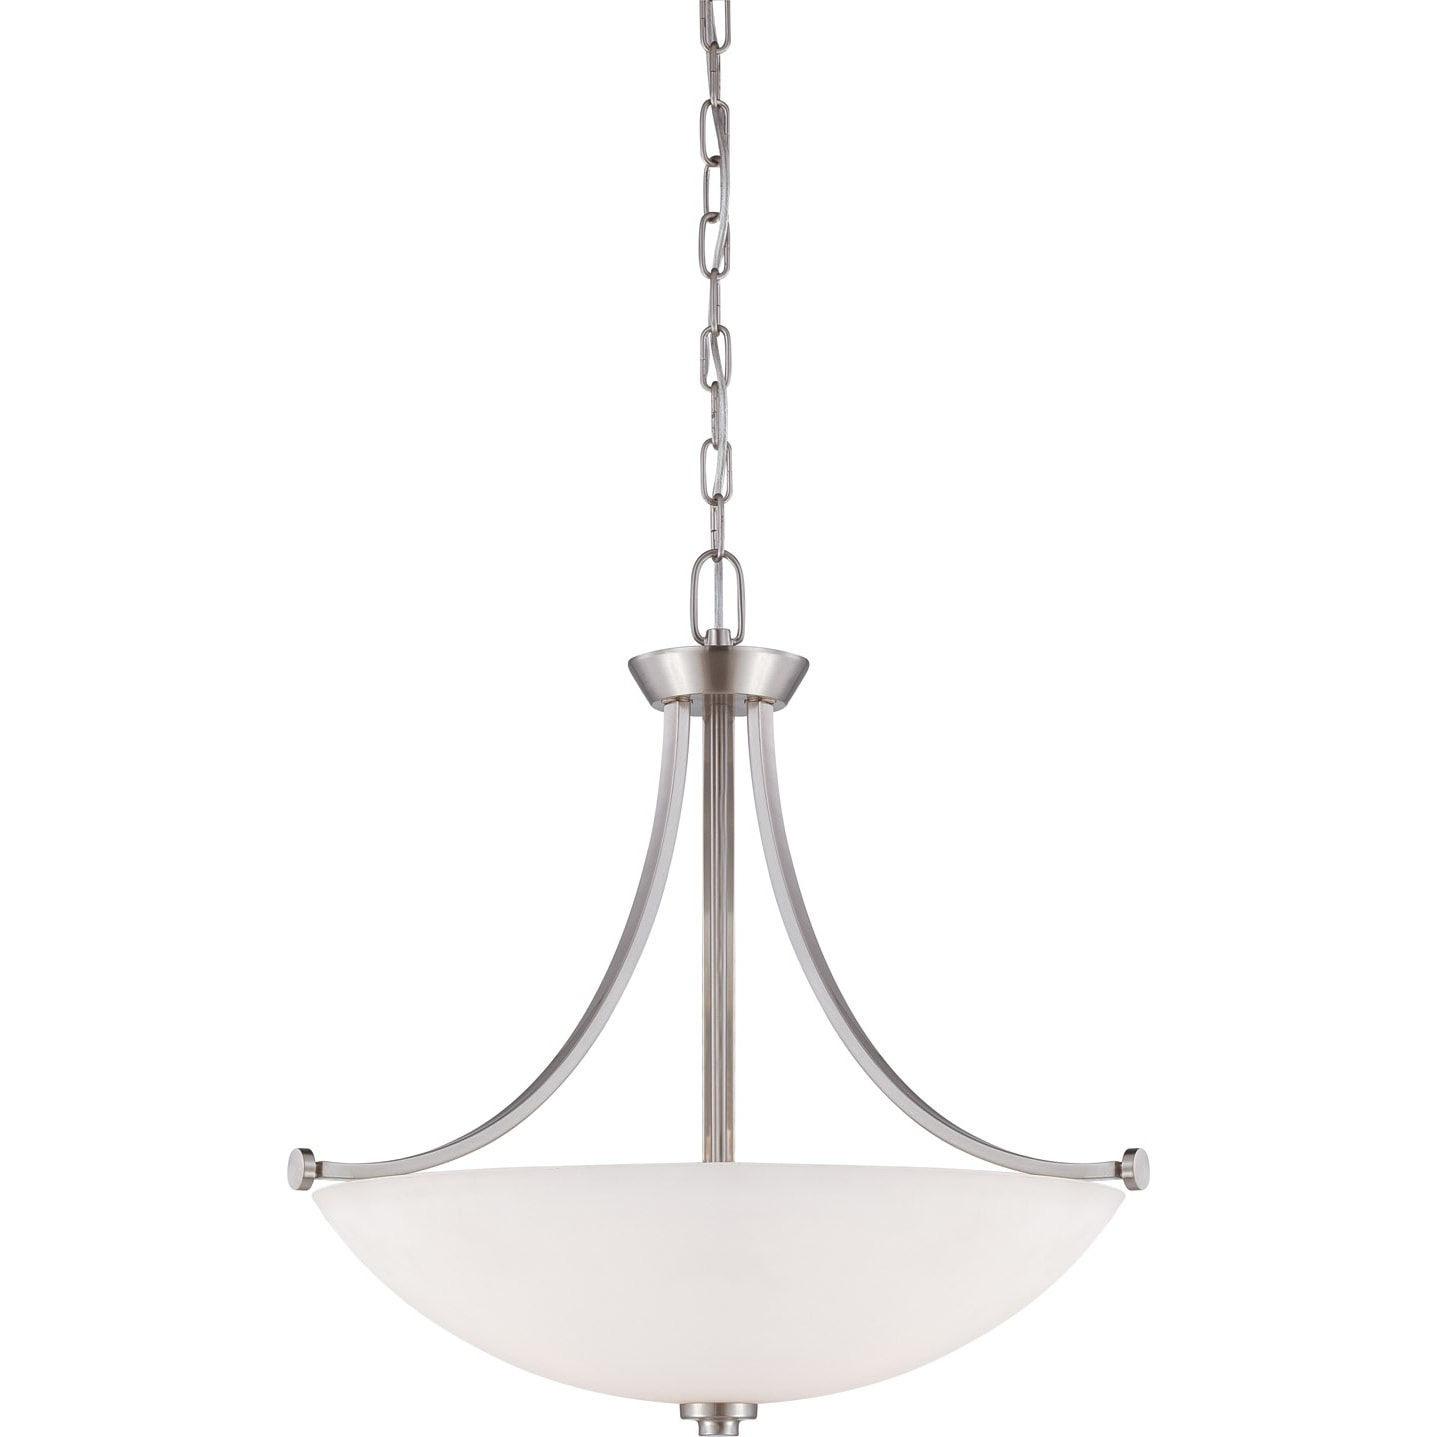 Nuvo Bentley 3-light Brushed Nickel Pendant